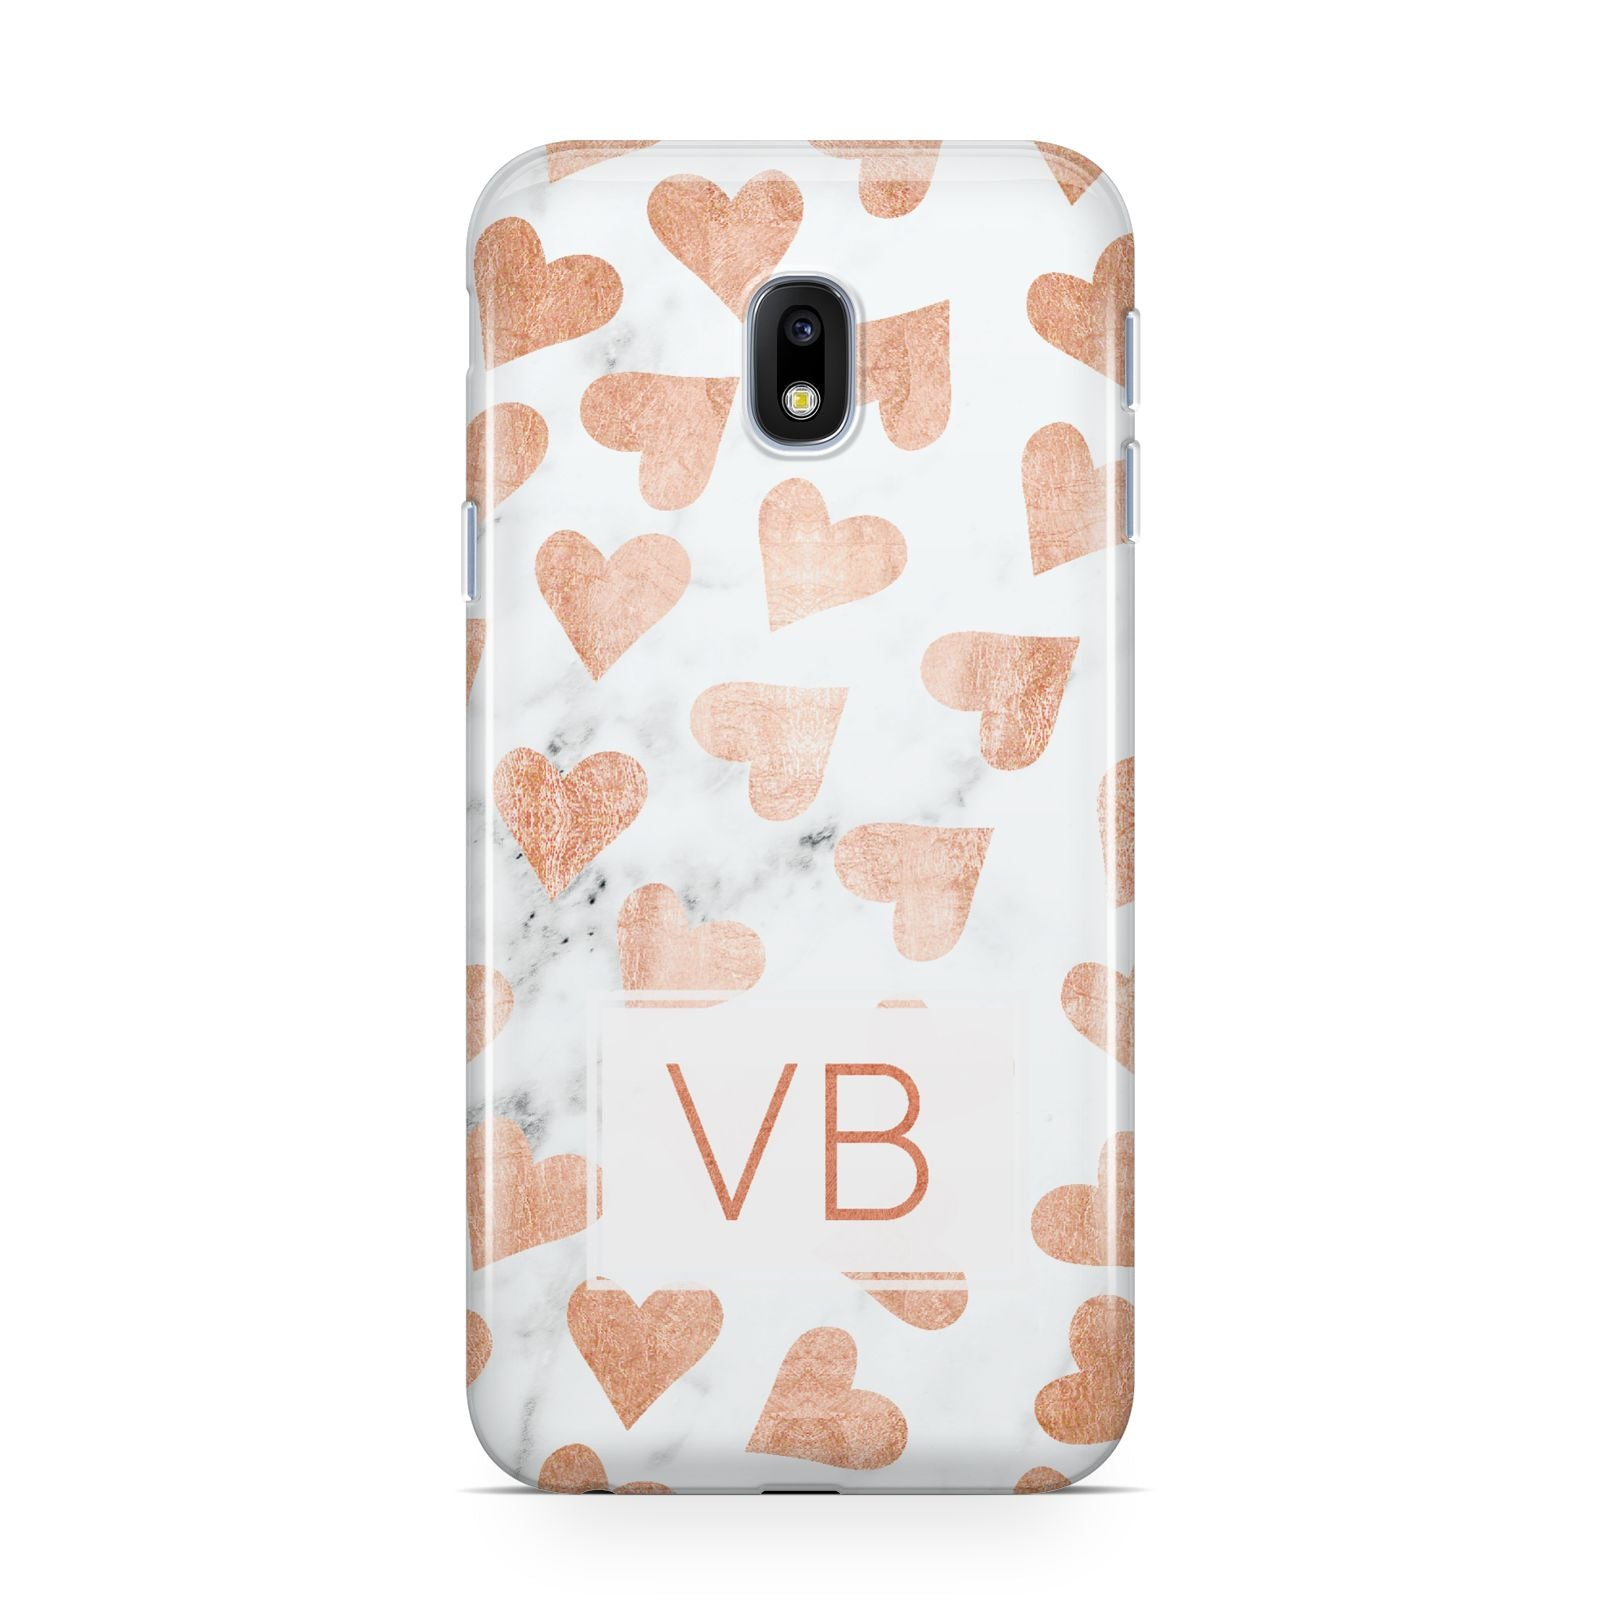 Personalised Heart Initialled Marble Samsung Galaxy J3 2017 Case